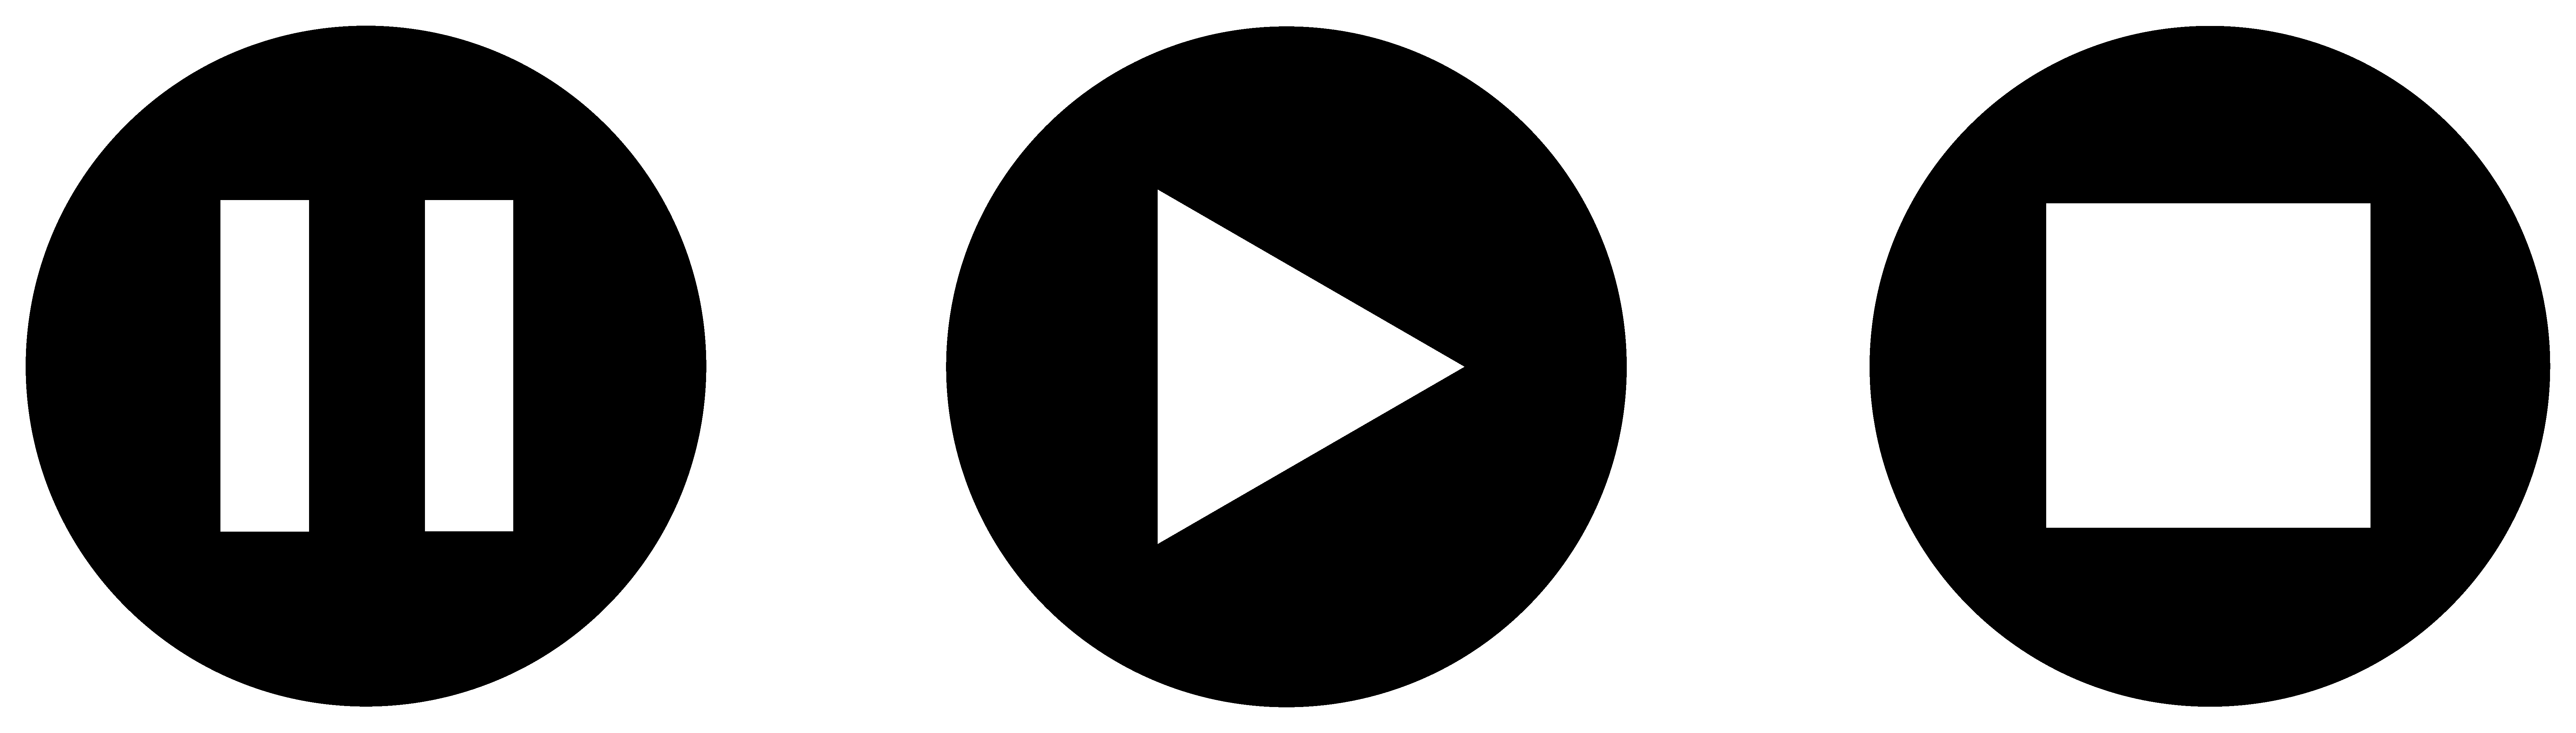 play button vector - DriverLayer Search Engine